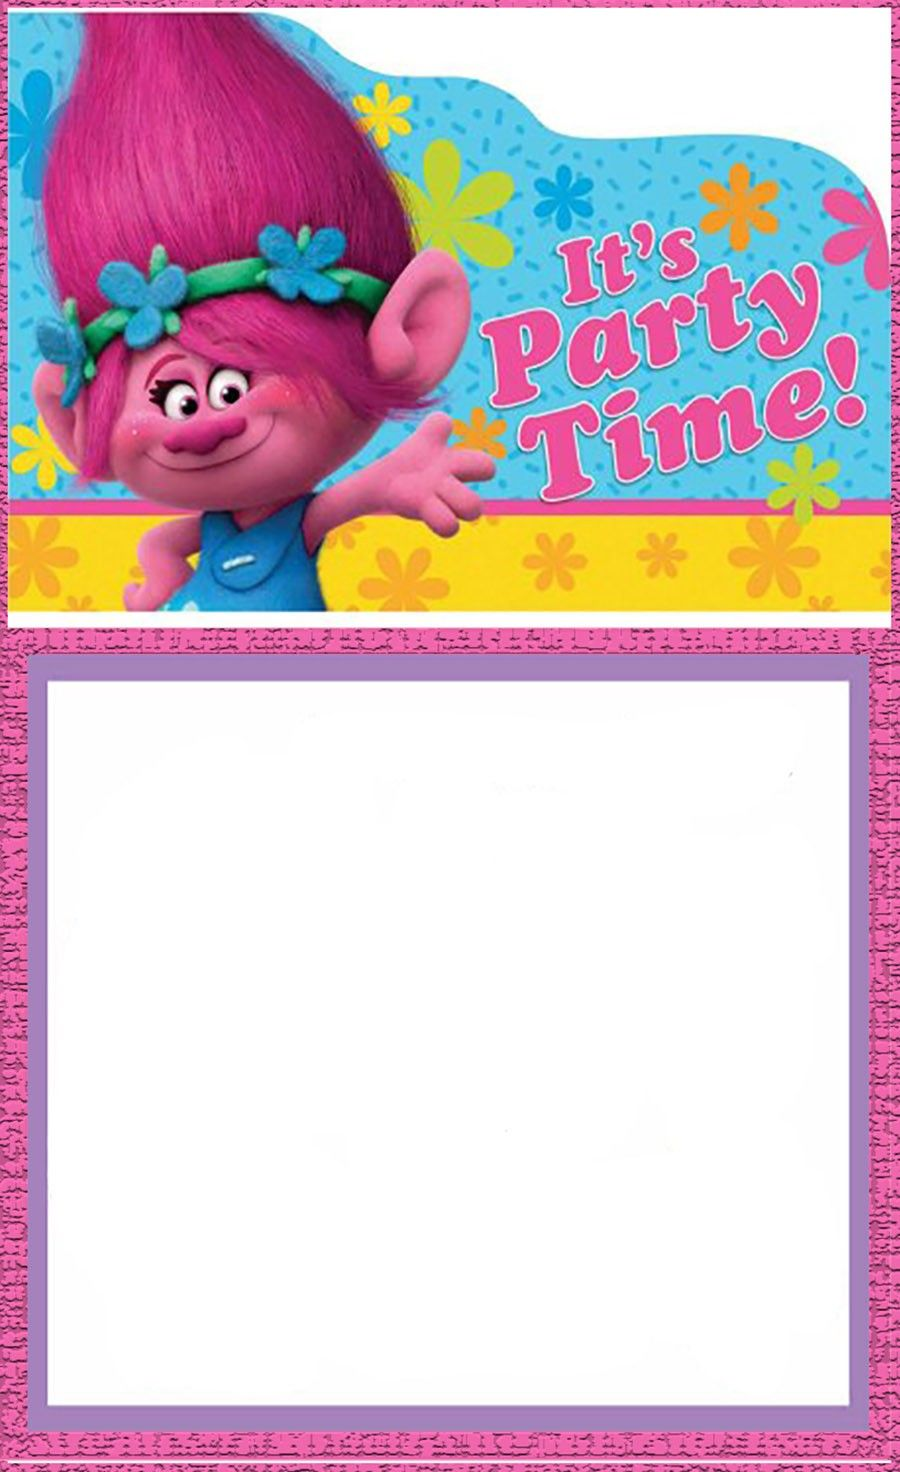 image relating to Trolls Printable Invitations titled No cost Printable Trolls Invitation Card Invites On the internet